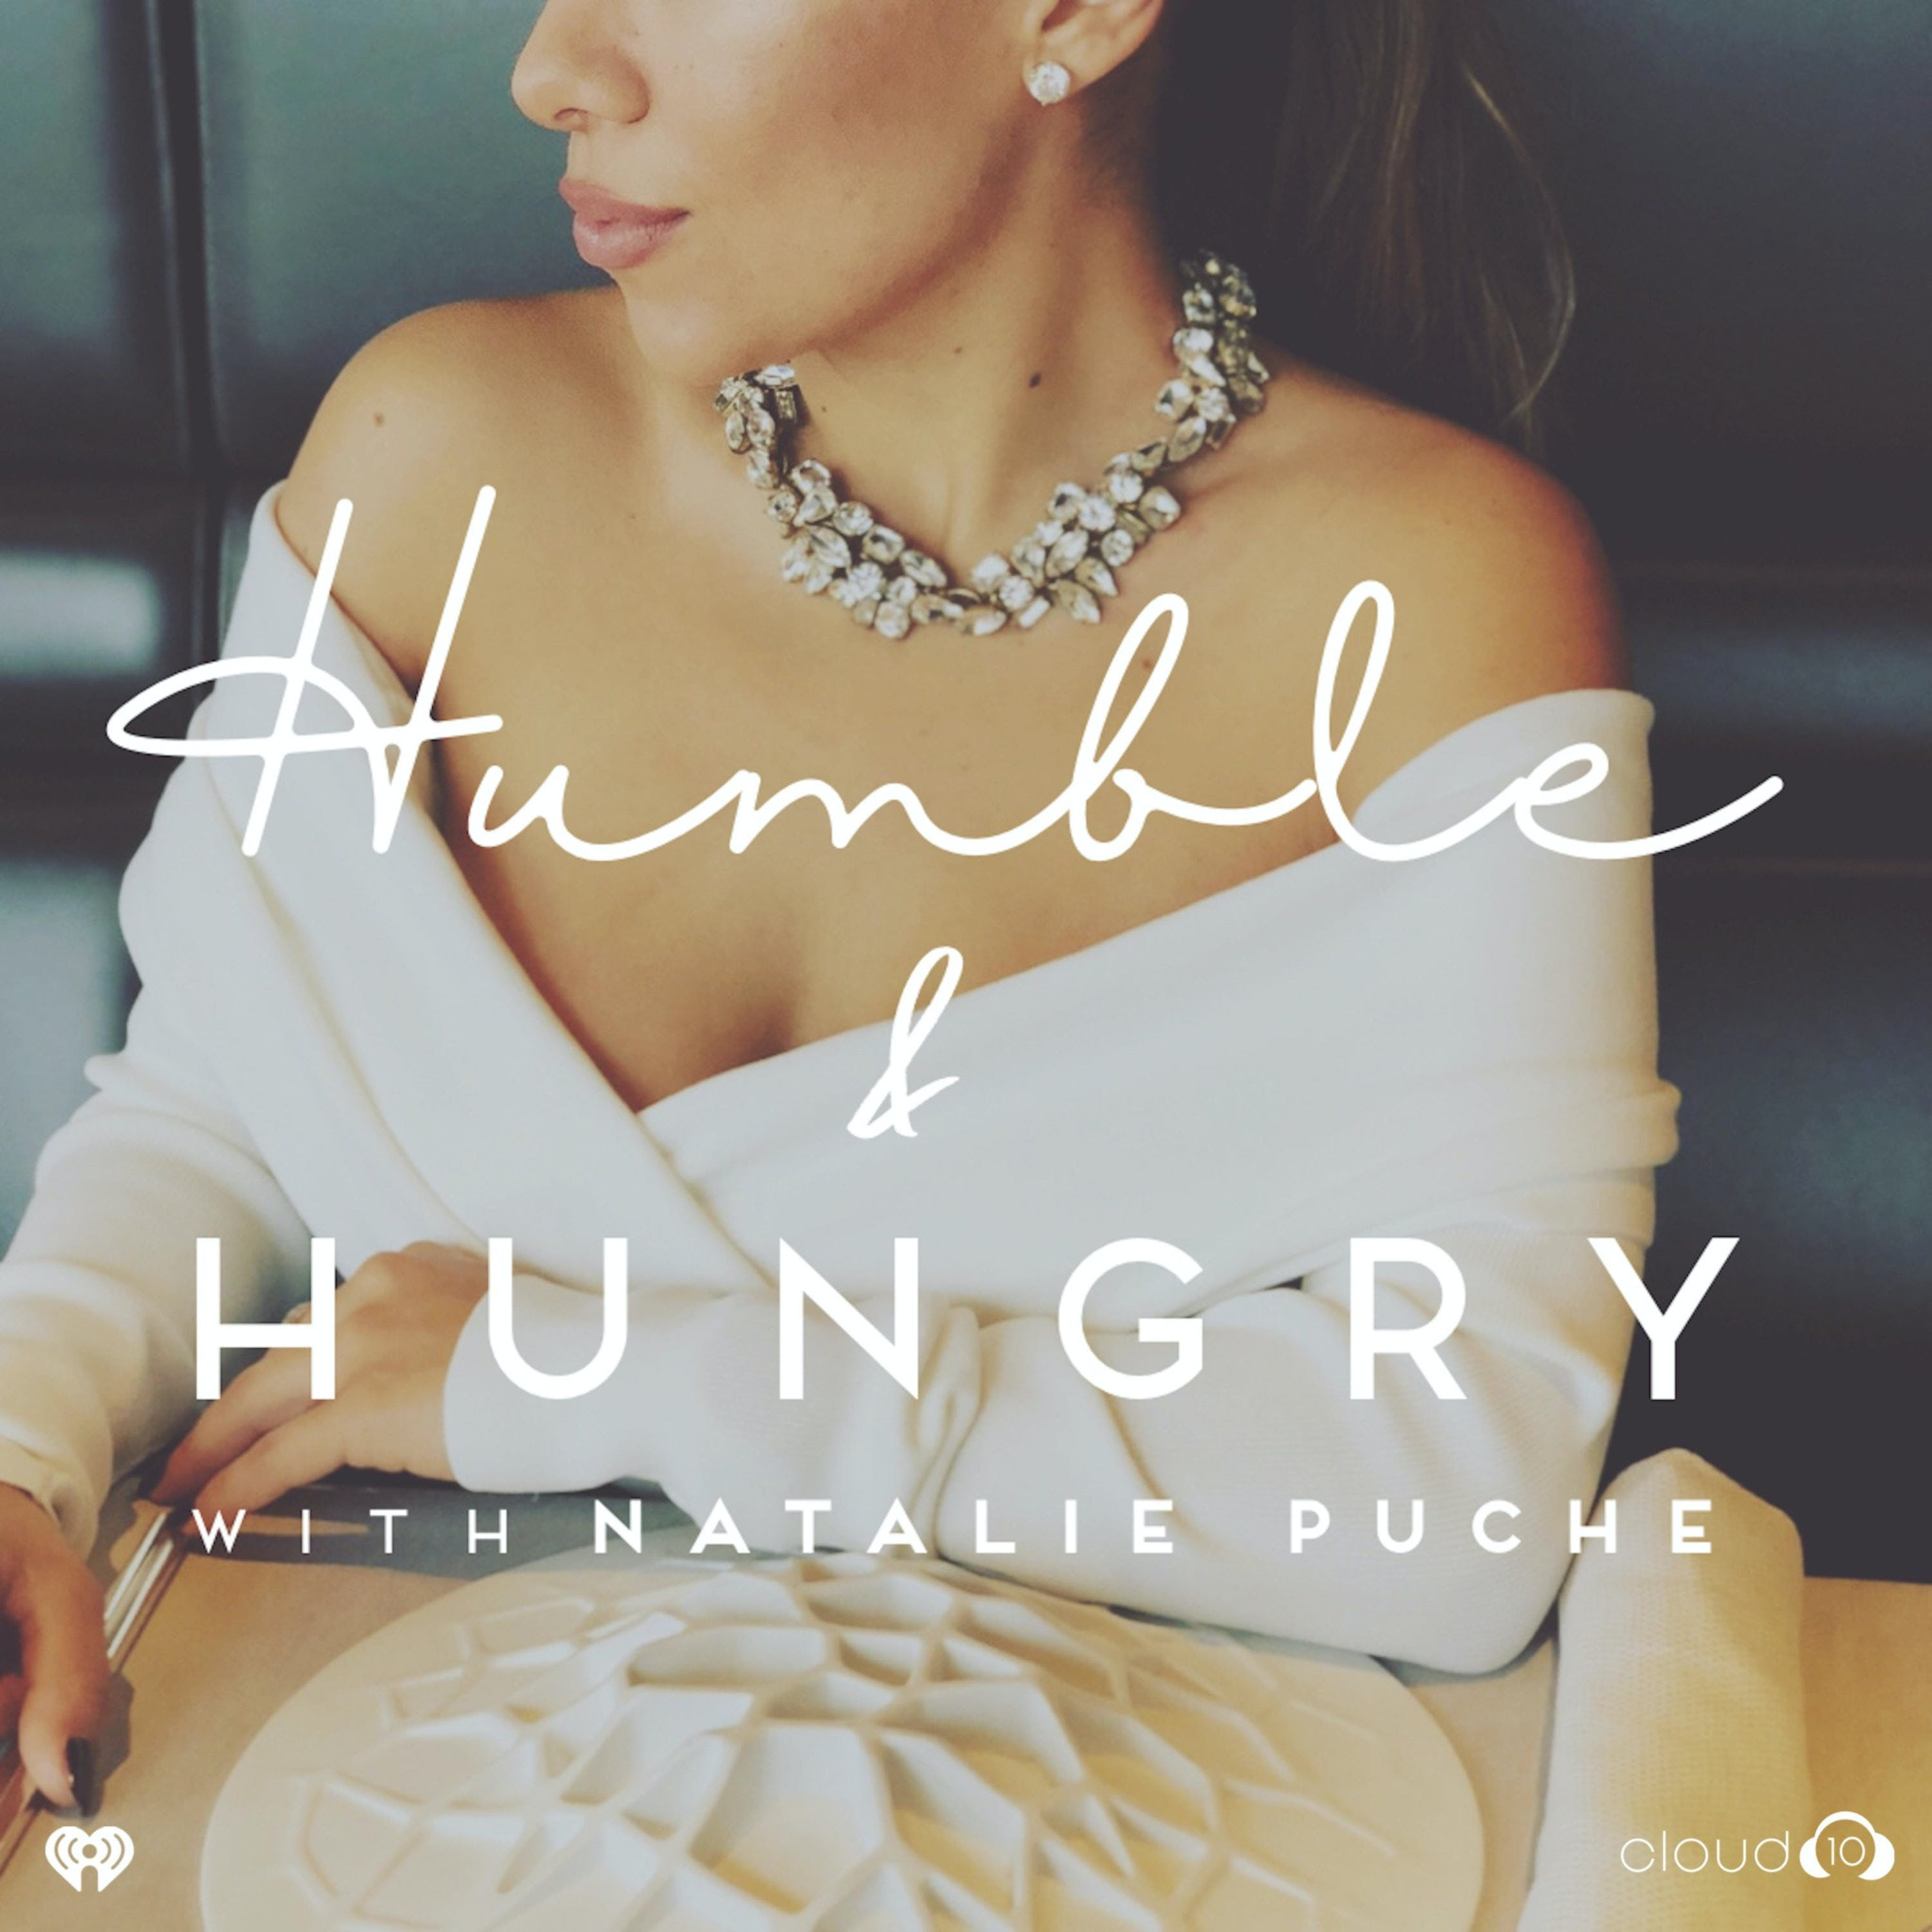 I'm Back! - Welcome to Humble and Hungry with Natalie Puche